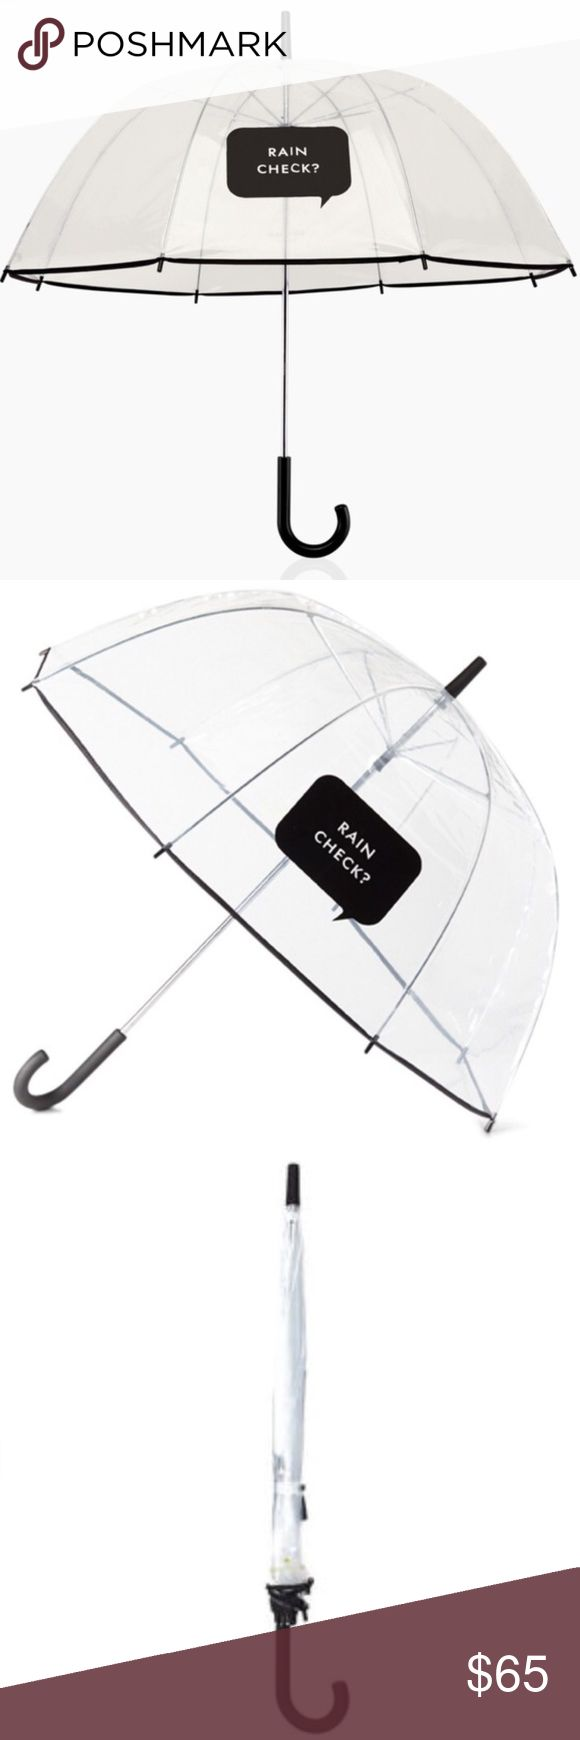 "♠️Kate Spade Rain Check Umbrella♠️ Instantly brighten any rainy day with this chic ""Rain Check?"" umbrella!!! Double layered nylon. Wind resistant. Painted resin hook handle. Measures 33.5"" in diameter. Sold out everywhere!!! kate spade Accessories Umbrellas"